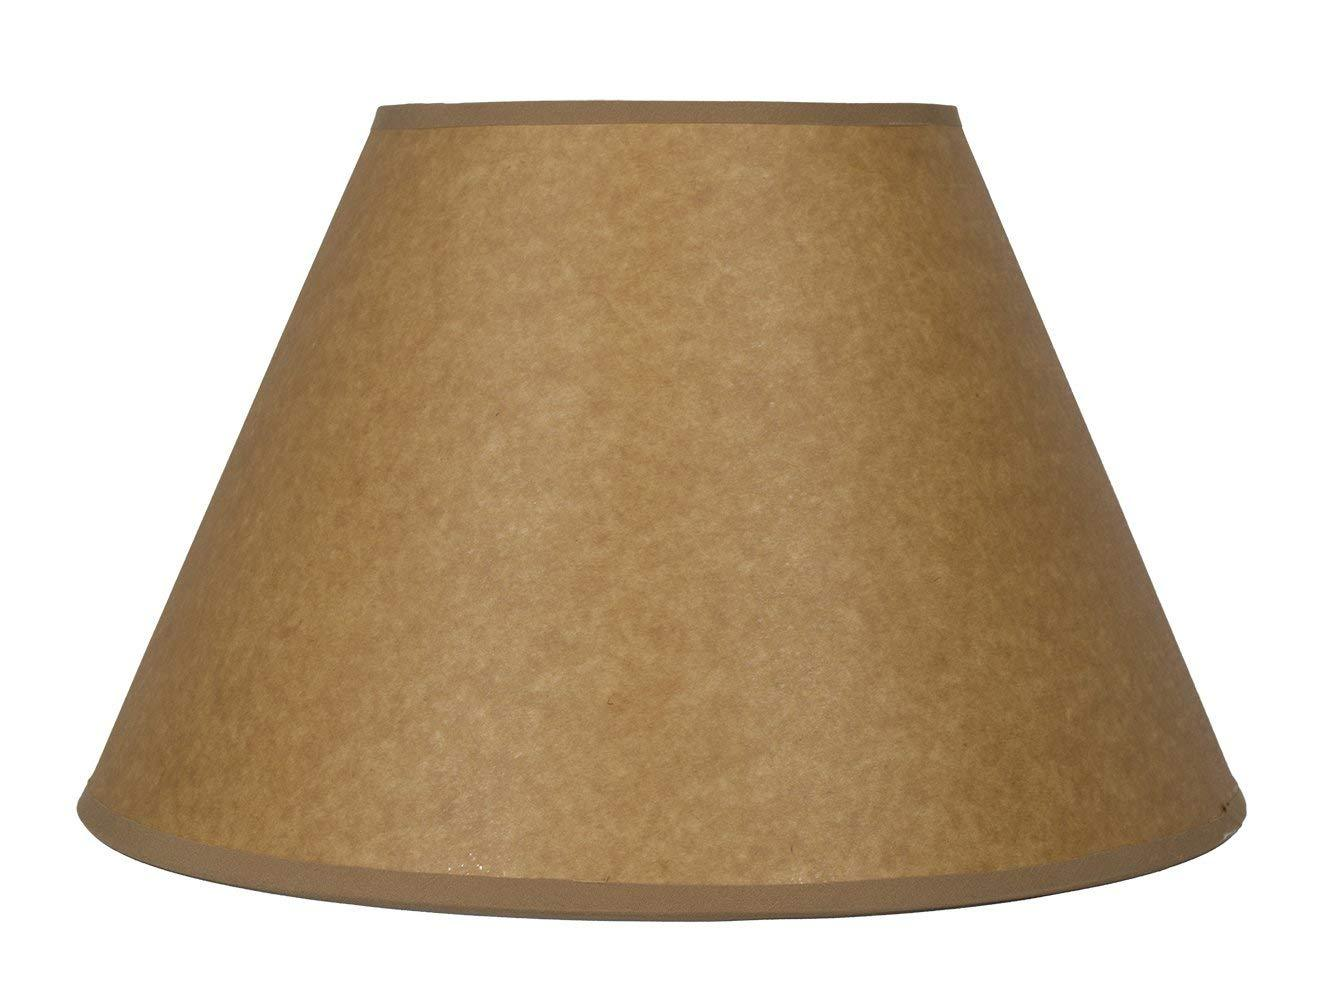 Urbanest Oil Paper Coolie Hardback Lampshade, Spider Washer Fitter